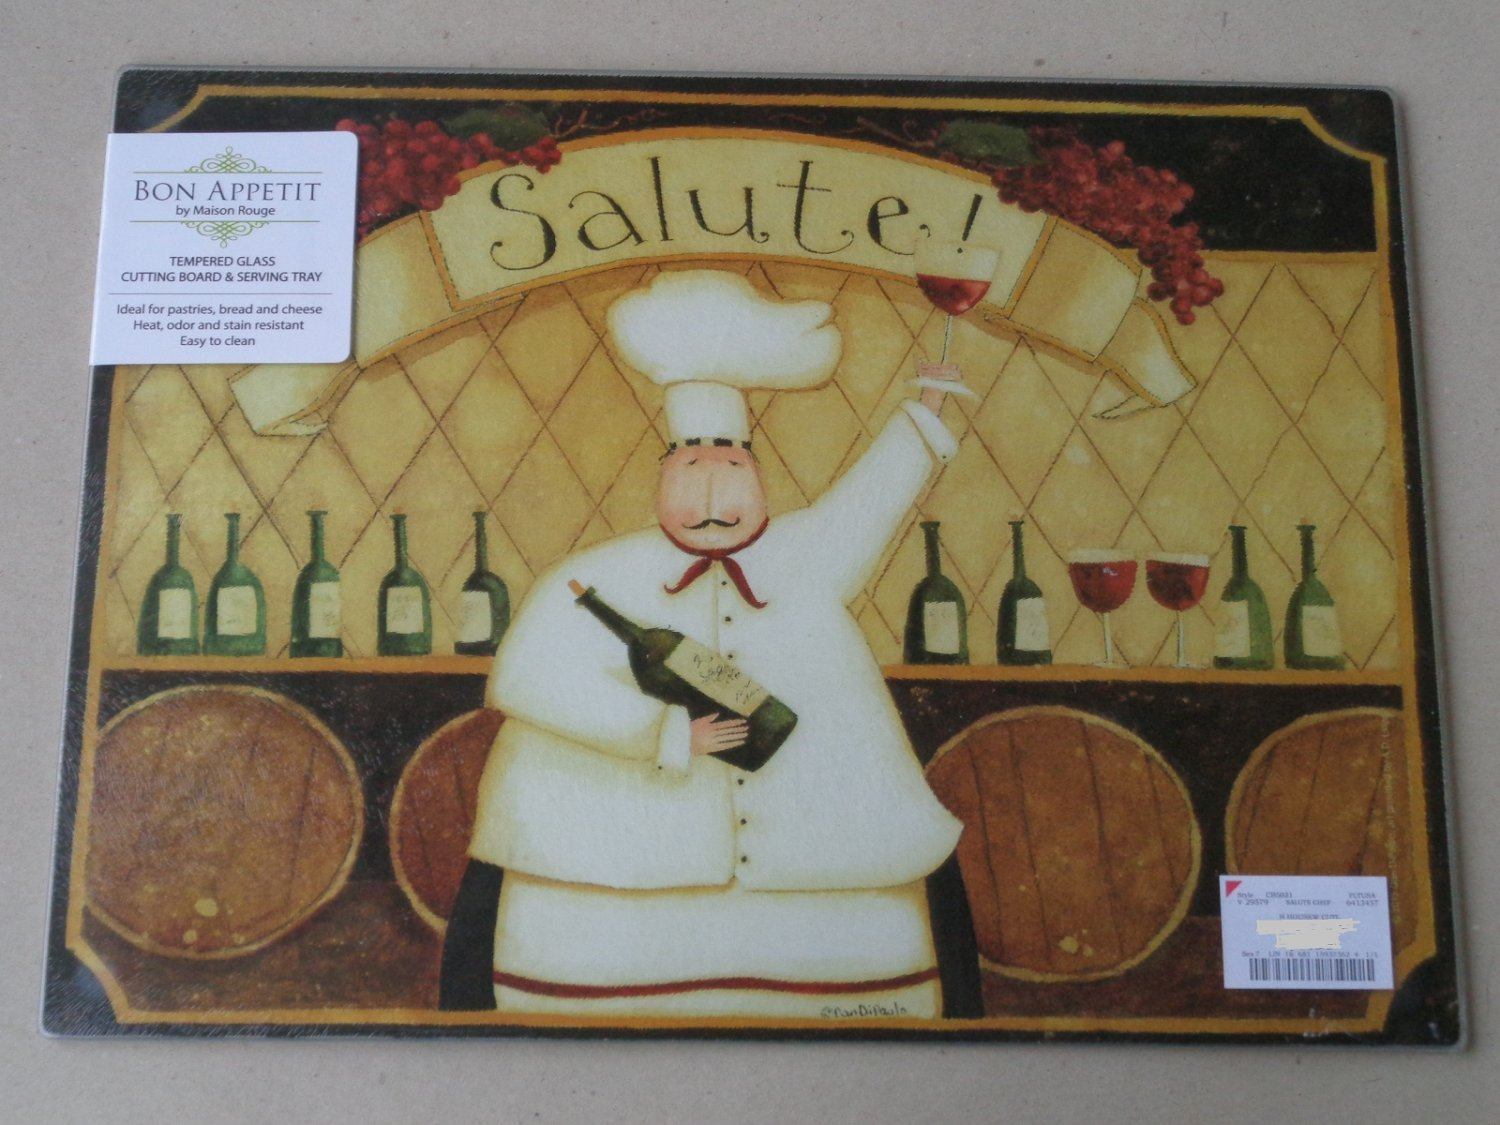 Maison Rouge Fat Chef Wine Glass Cutting Board Serving Tray